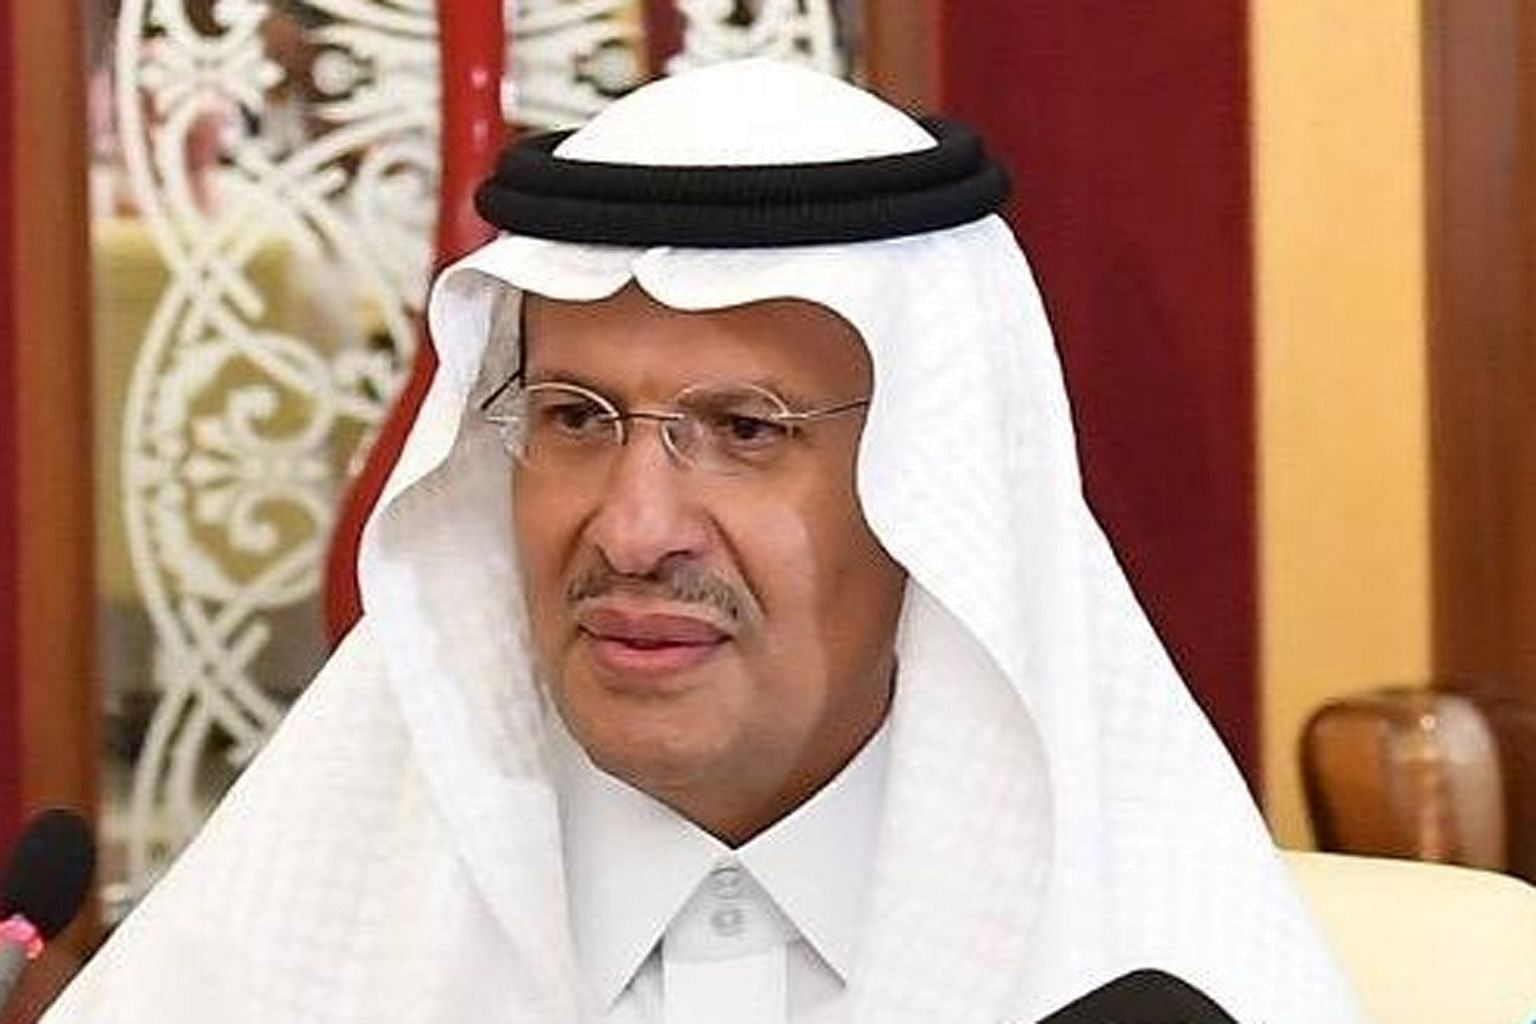 Saudi Arabia's Energy Minister, Prince Abdulaziz bin Salman, said state-owned oil producer Saudi Aramco has managed to recover more than half of the production that was lost during last Saturday's terrorist attack on the Abqaiq facility.